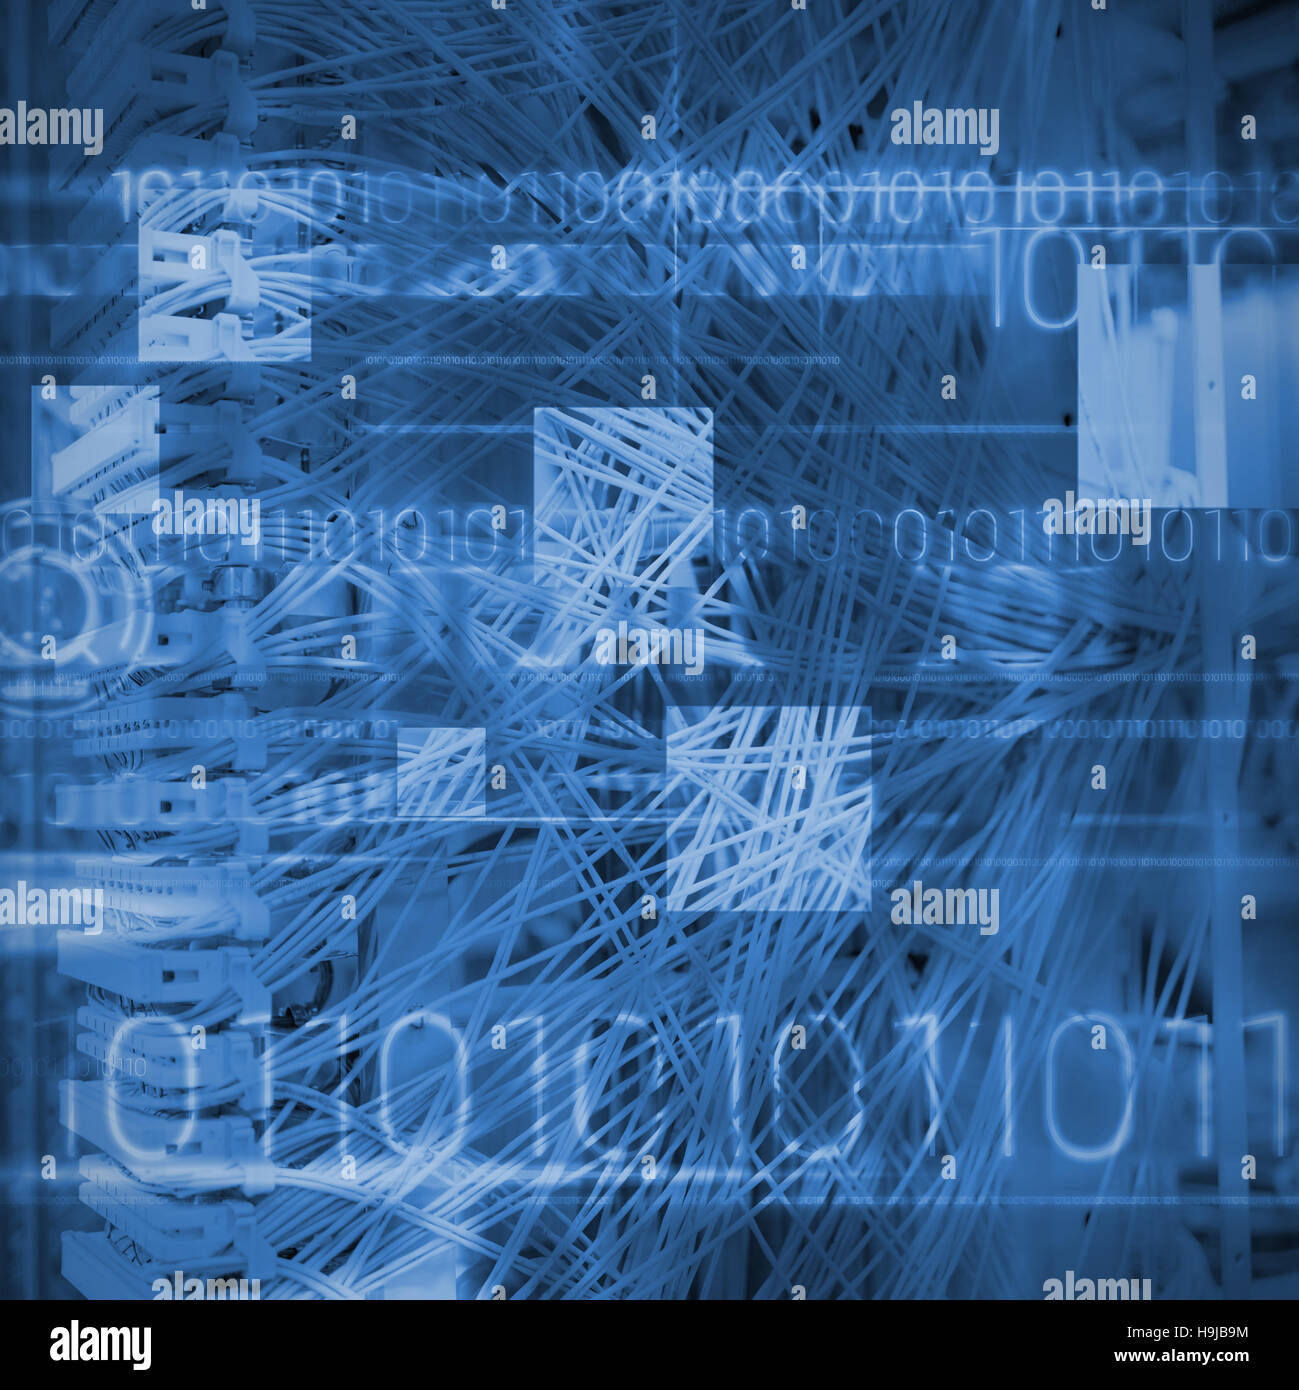 Composite image of blue technology design with binary code - Stock Image